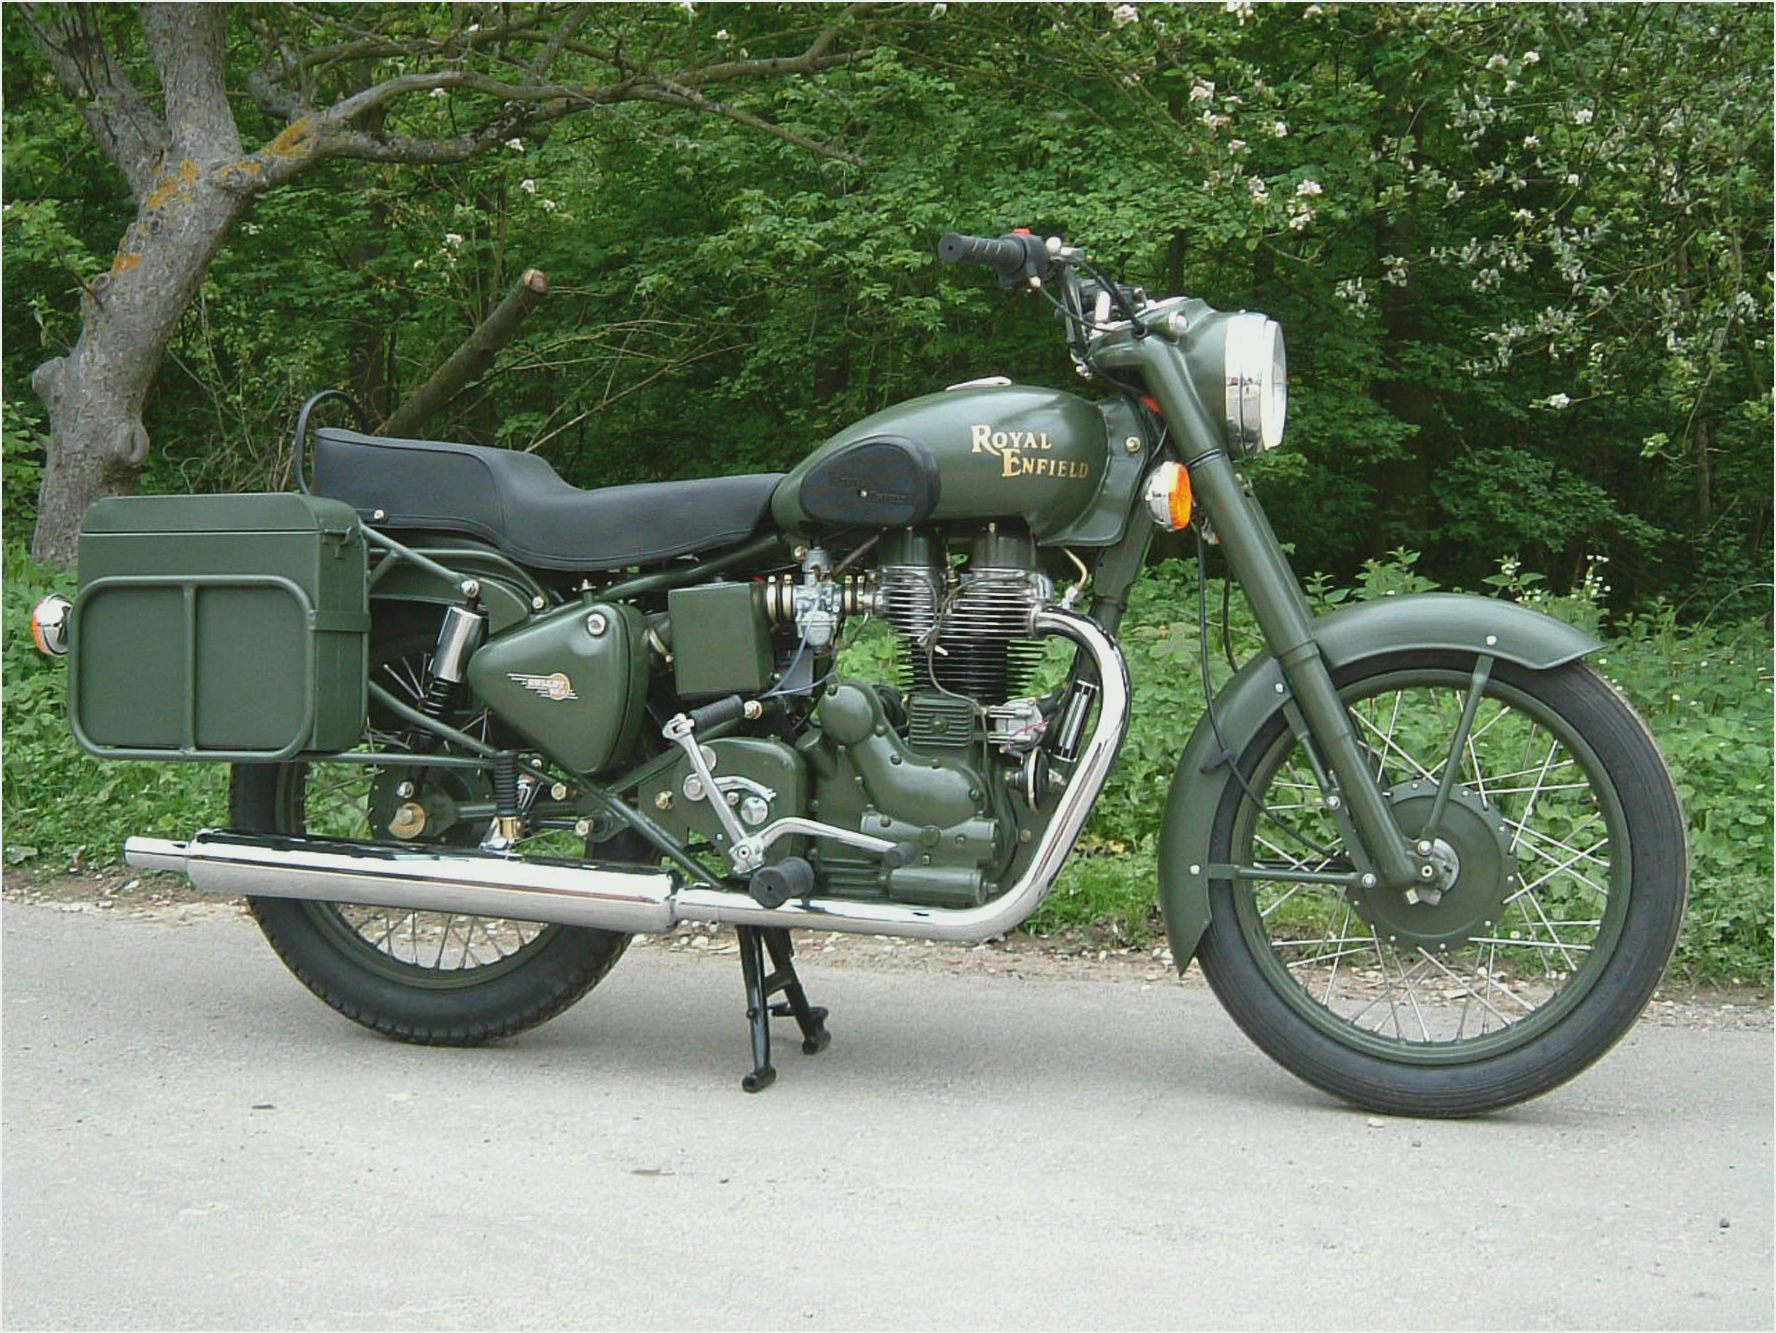 Royal Enfield Bullet 350 Army 1990 images #122683